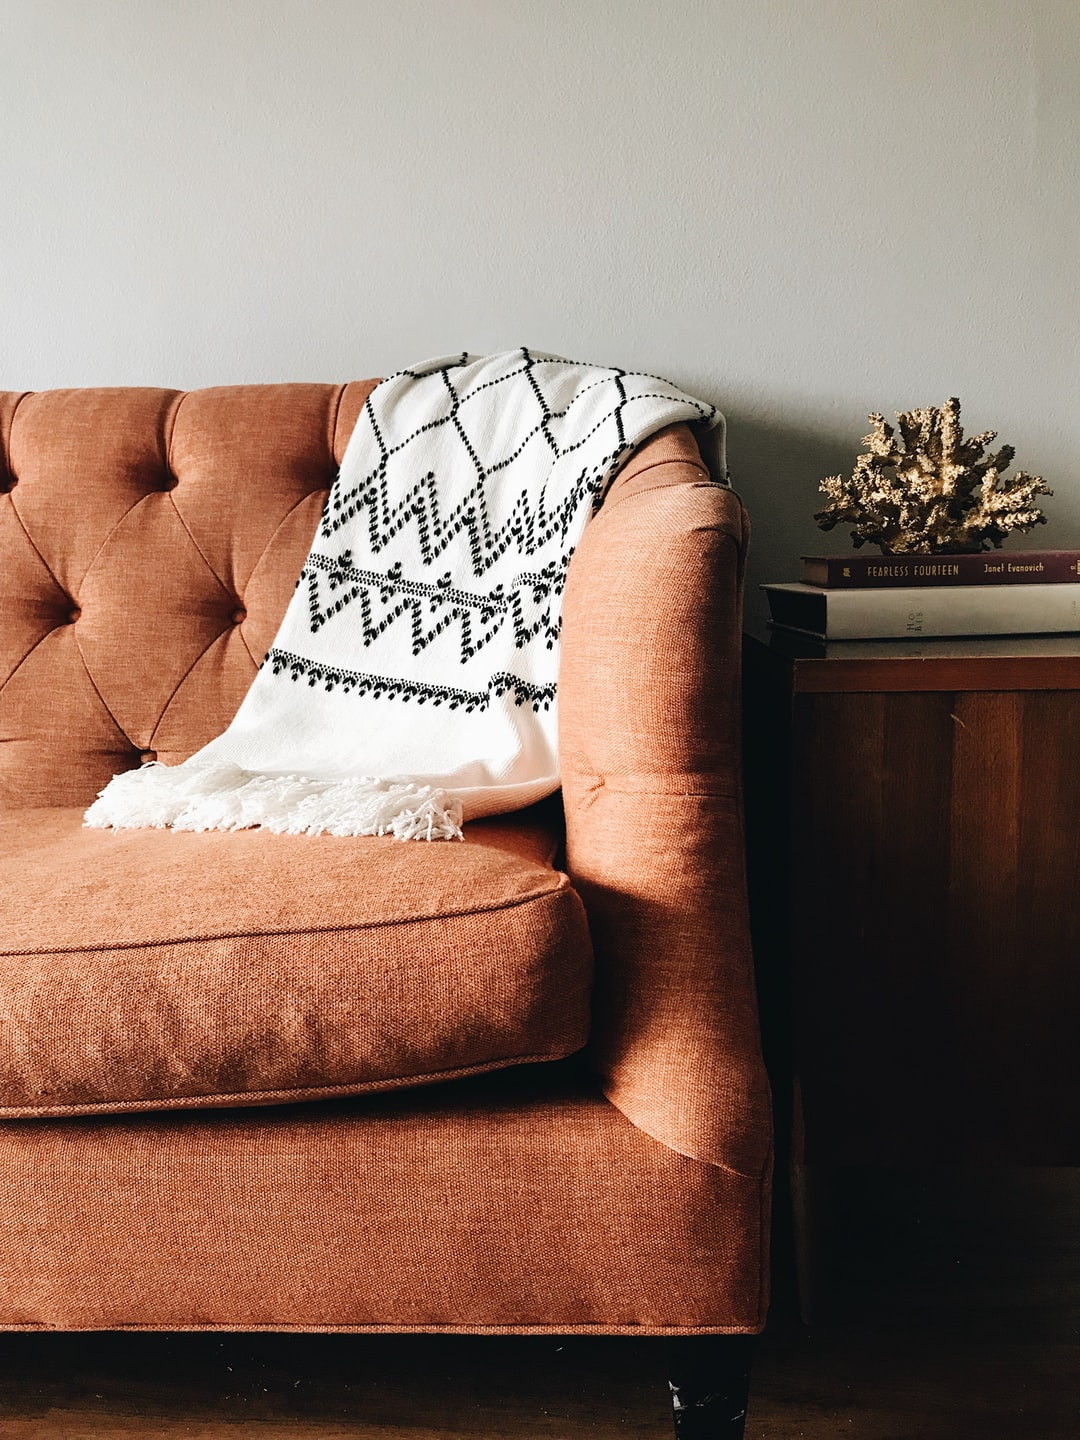 HOW TO PROTECT YOUR SOFA 5 REASONS WHY YOU SHOULD PROTECT YOUR SOFA WITH A COVER